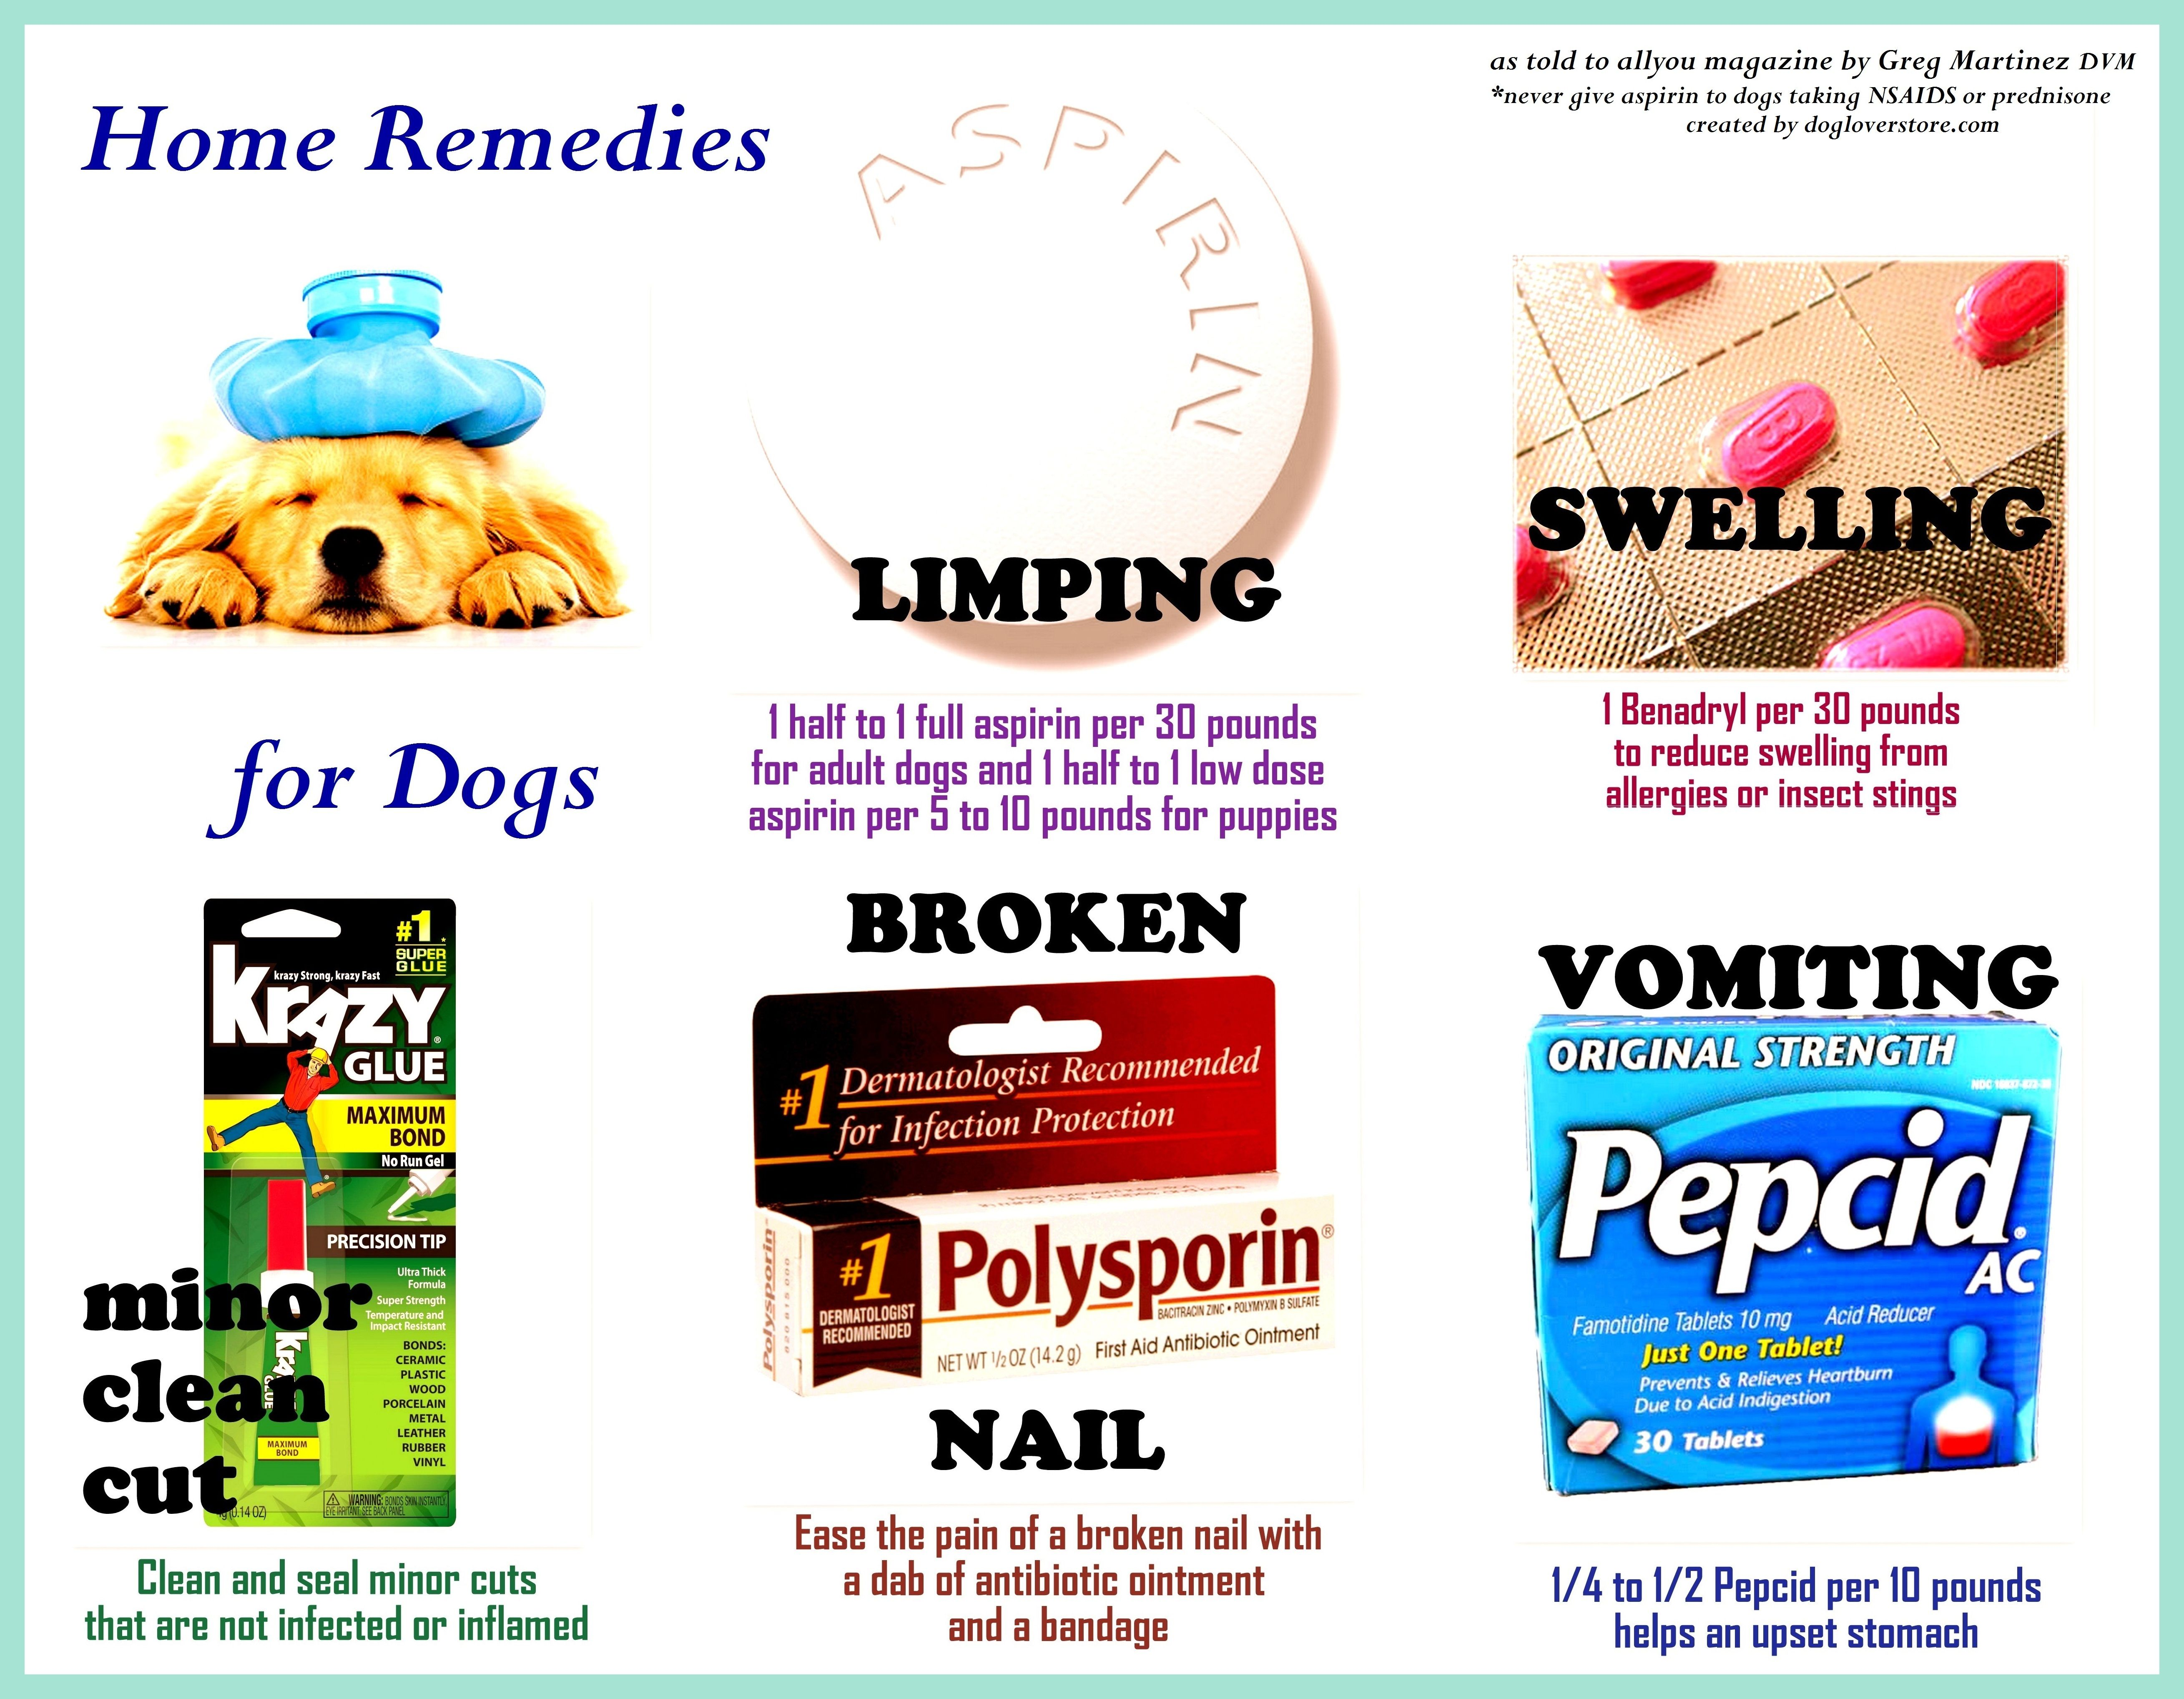 Home Remedies for Dogs great information! Dog